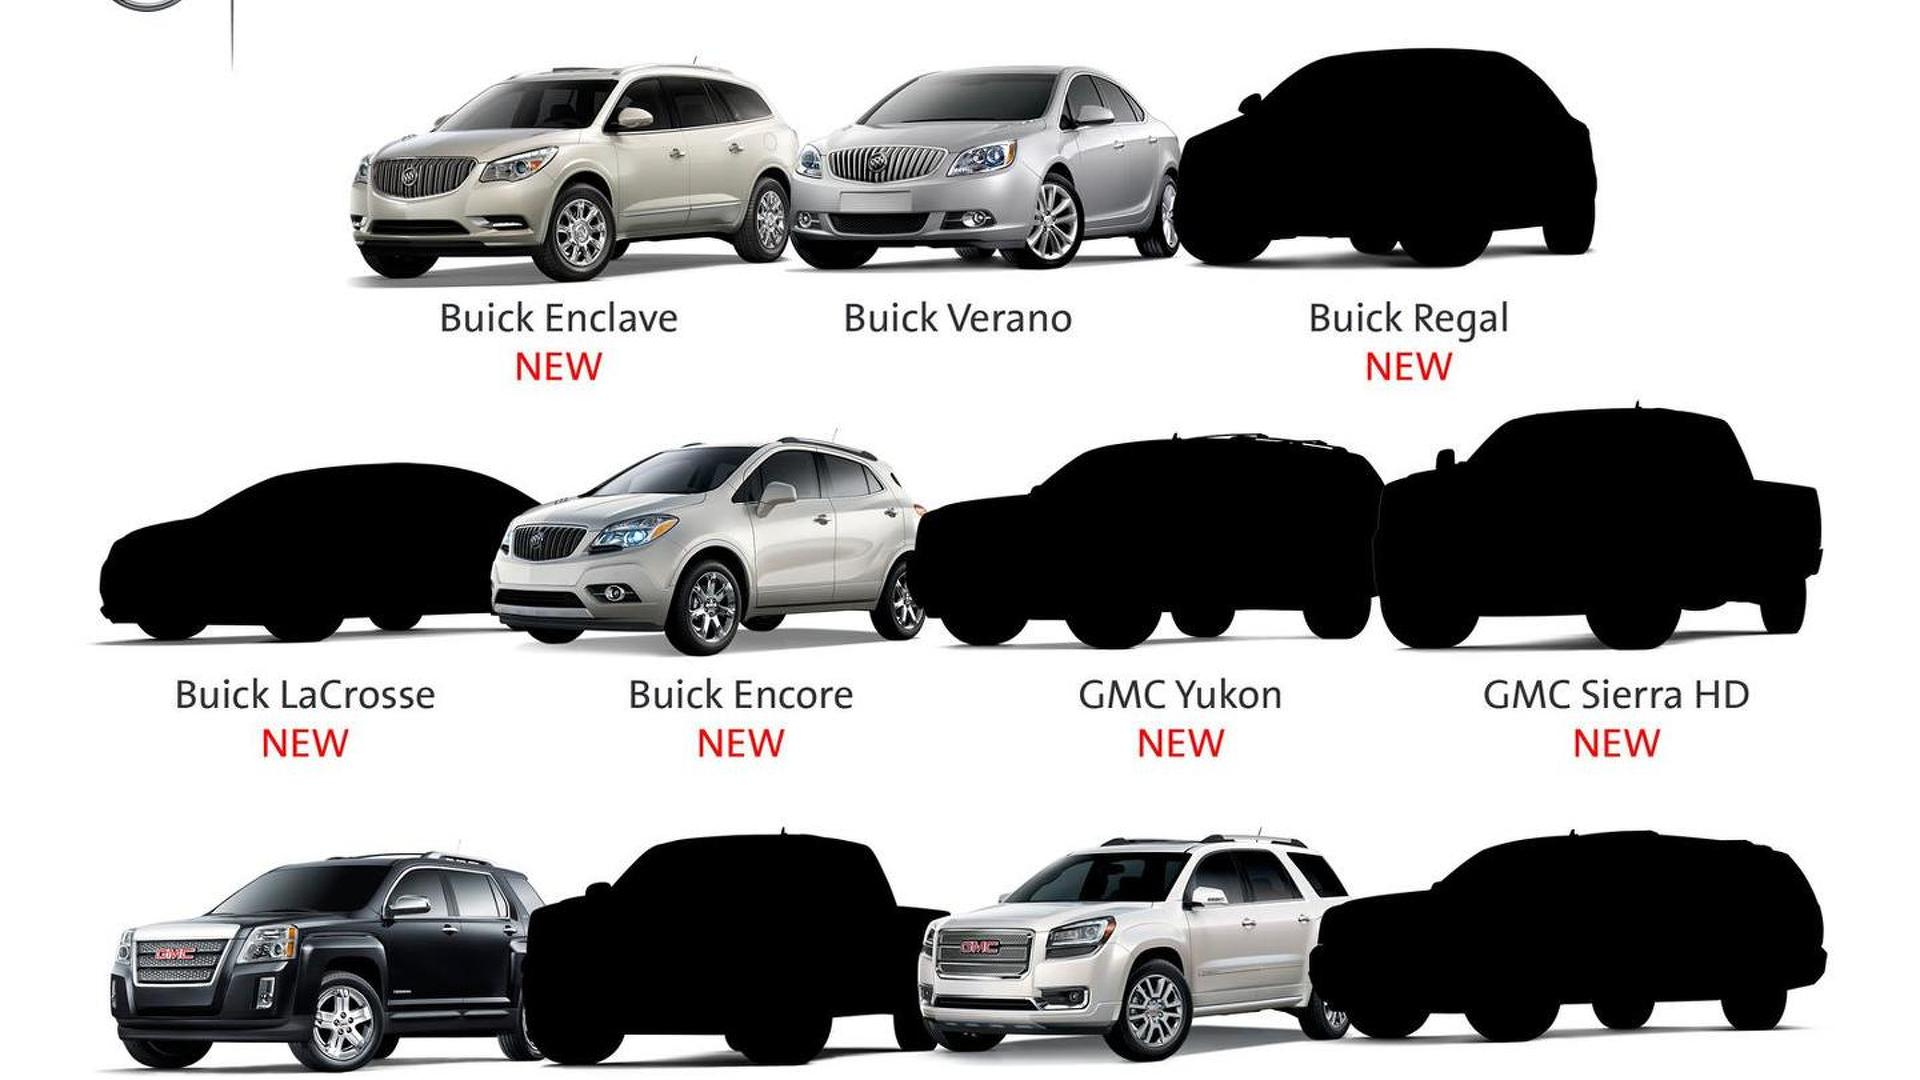 Buick & GMC tease six upcoming models